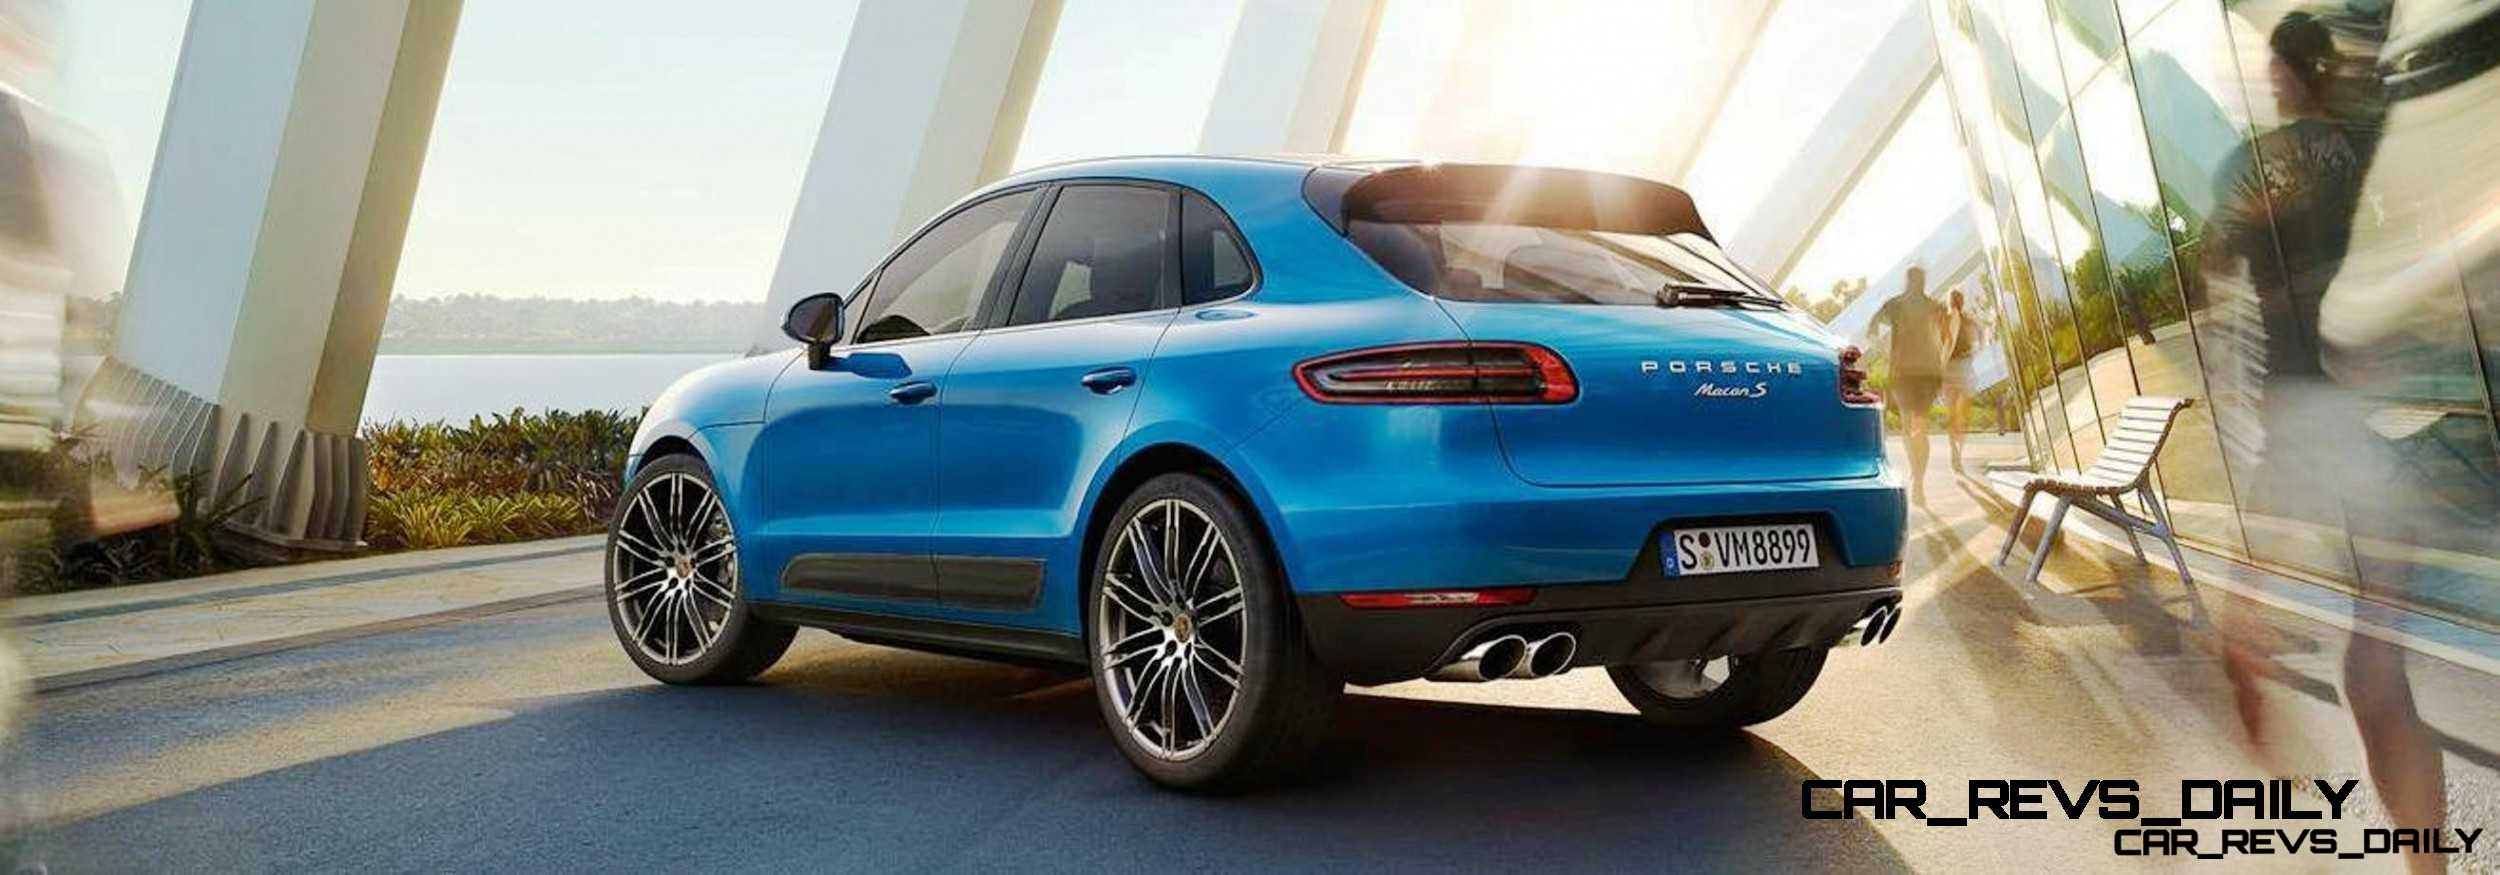 2015 Porsche Macan - Latest Images - CarRevsDaily.com 44